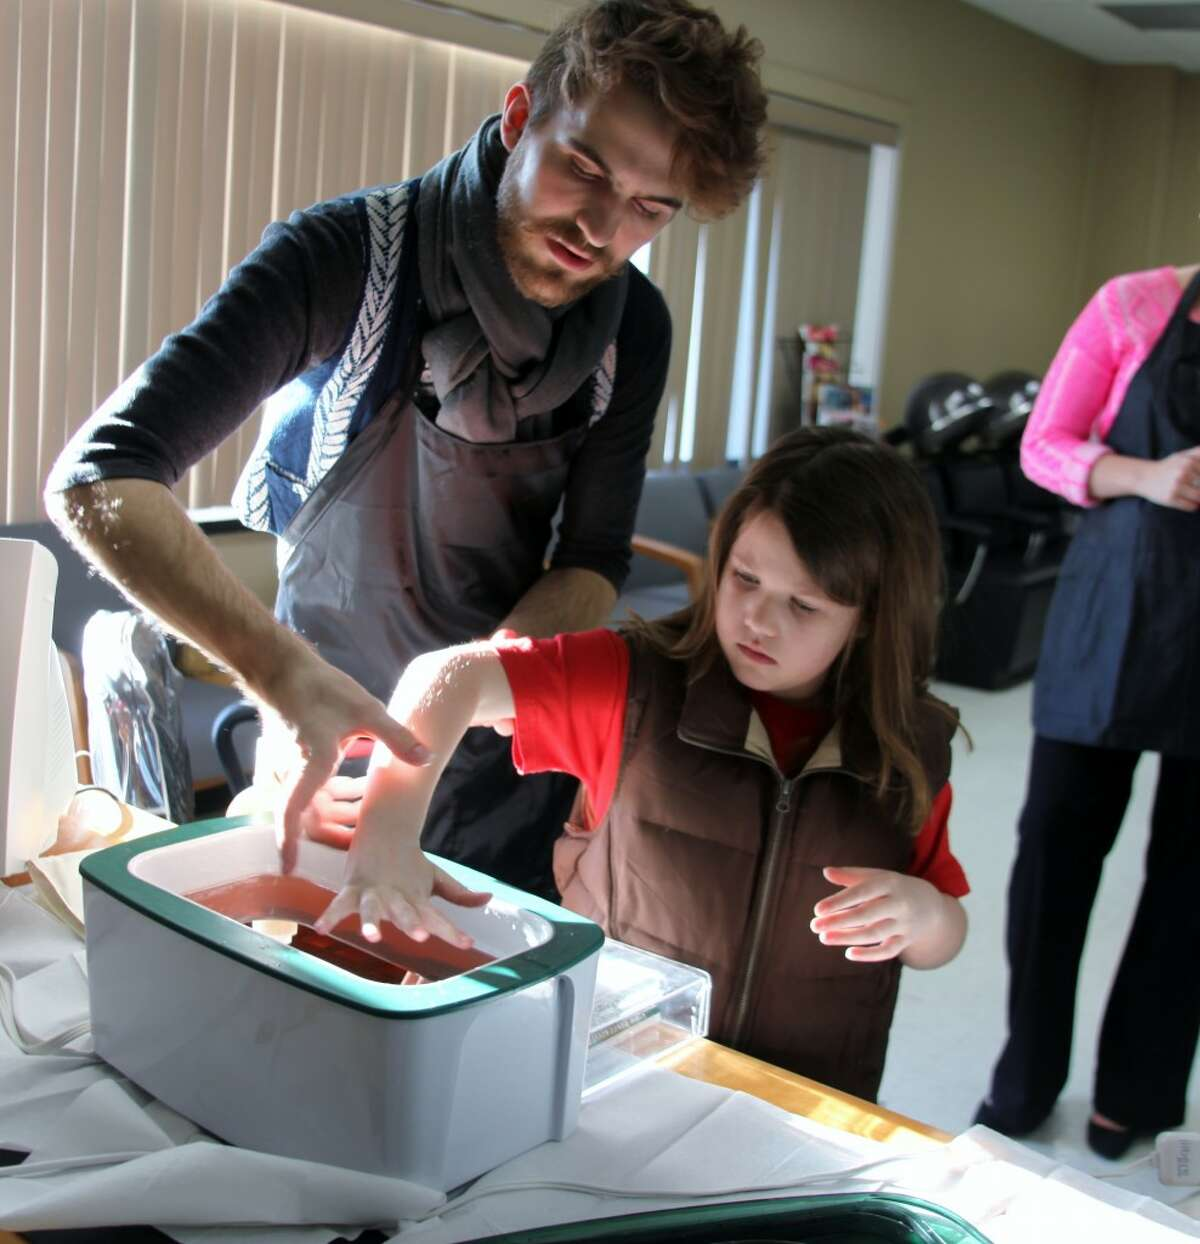 COMMUNITY RESOURCE: Cosmetology student Timothy Sheffer guides Morgan Horvath, 7, through a wax dip at the MOCC open house.